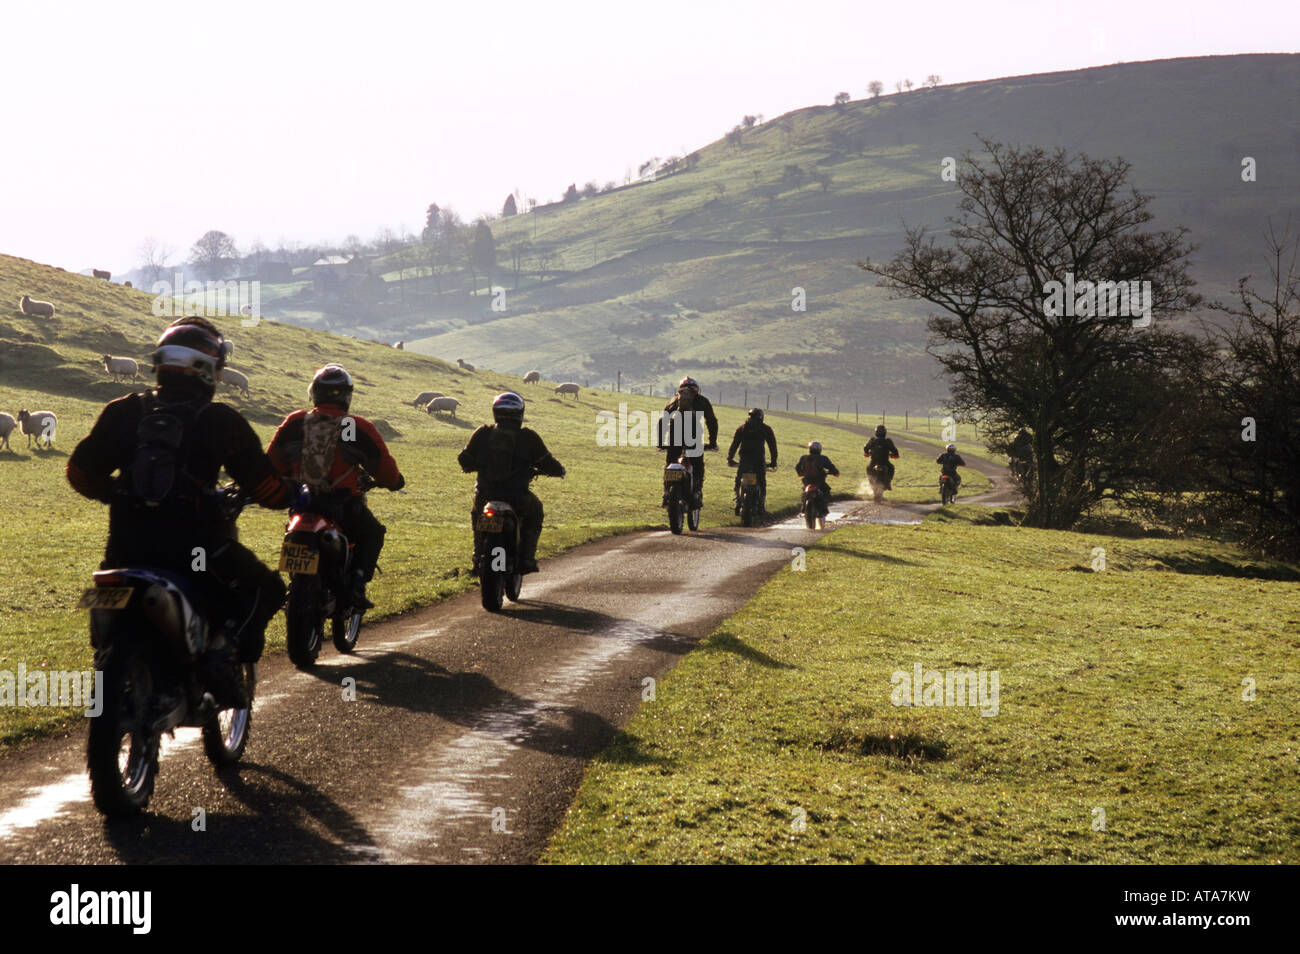 Cross country motorcyclists, near Chrome Hill, Buxton, Peak District National Park, Derbyshire - Stock Image